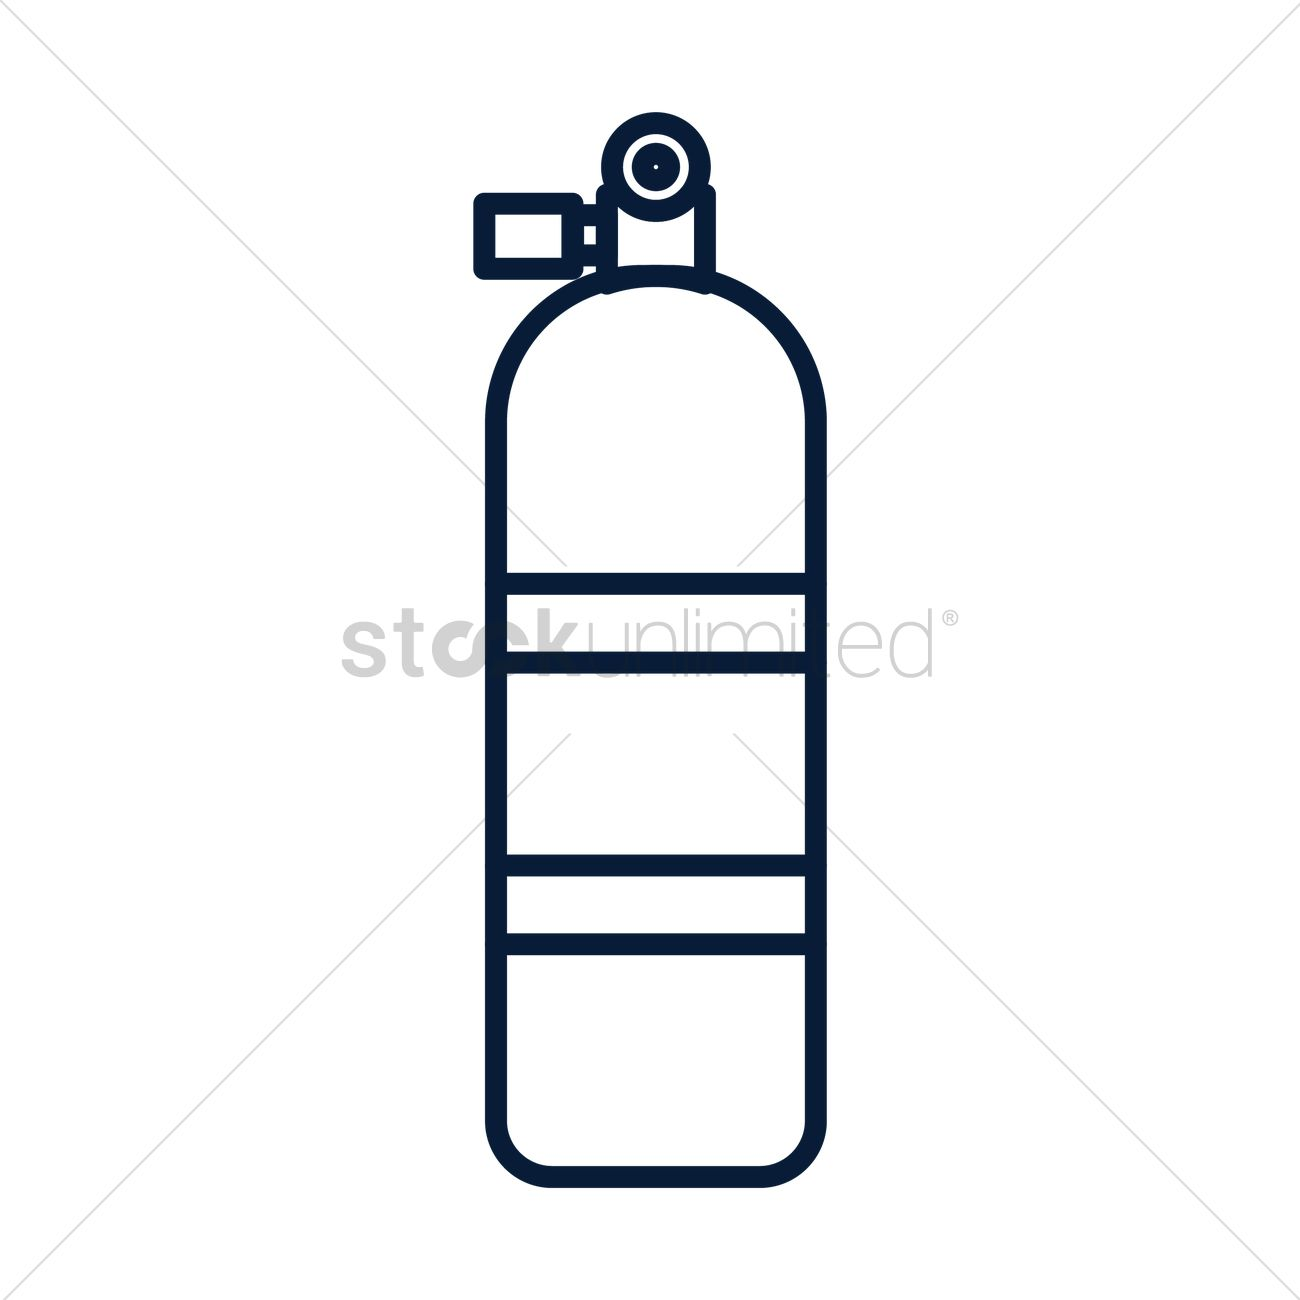 Oxygen tank clipart 5 » Clipart Station.